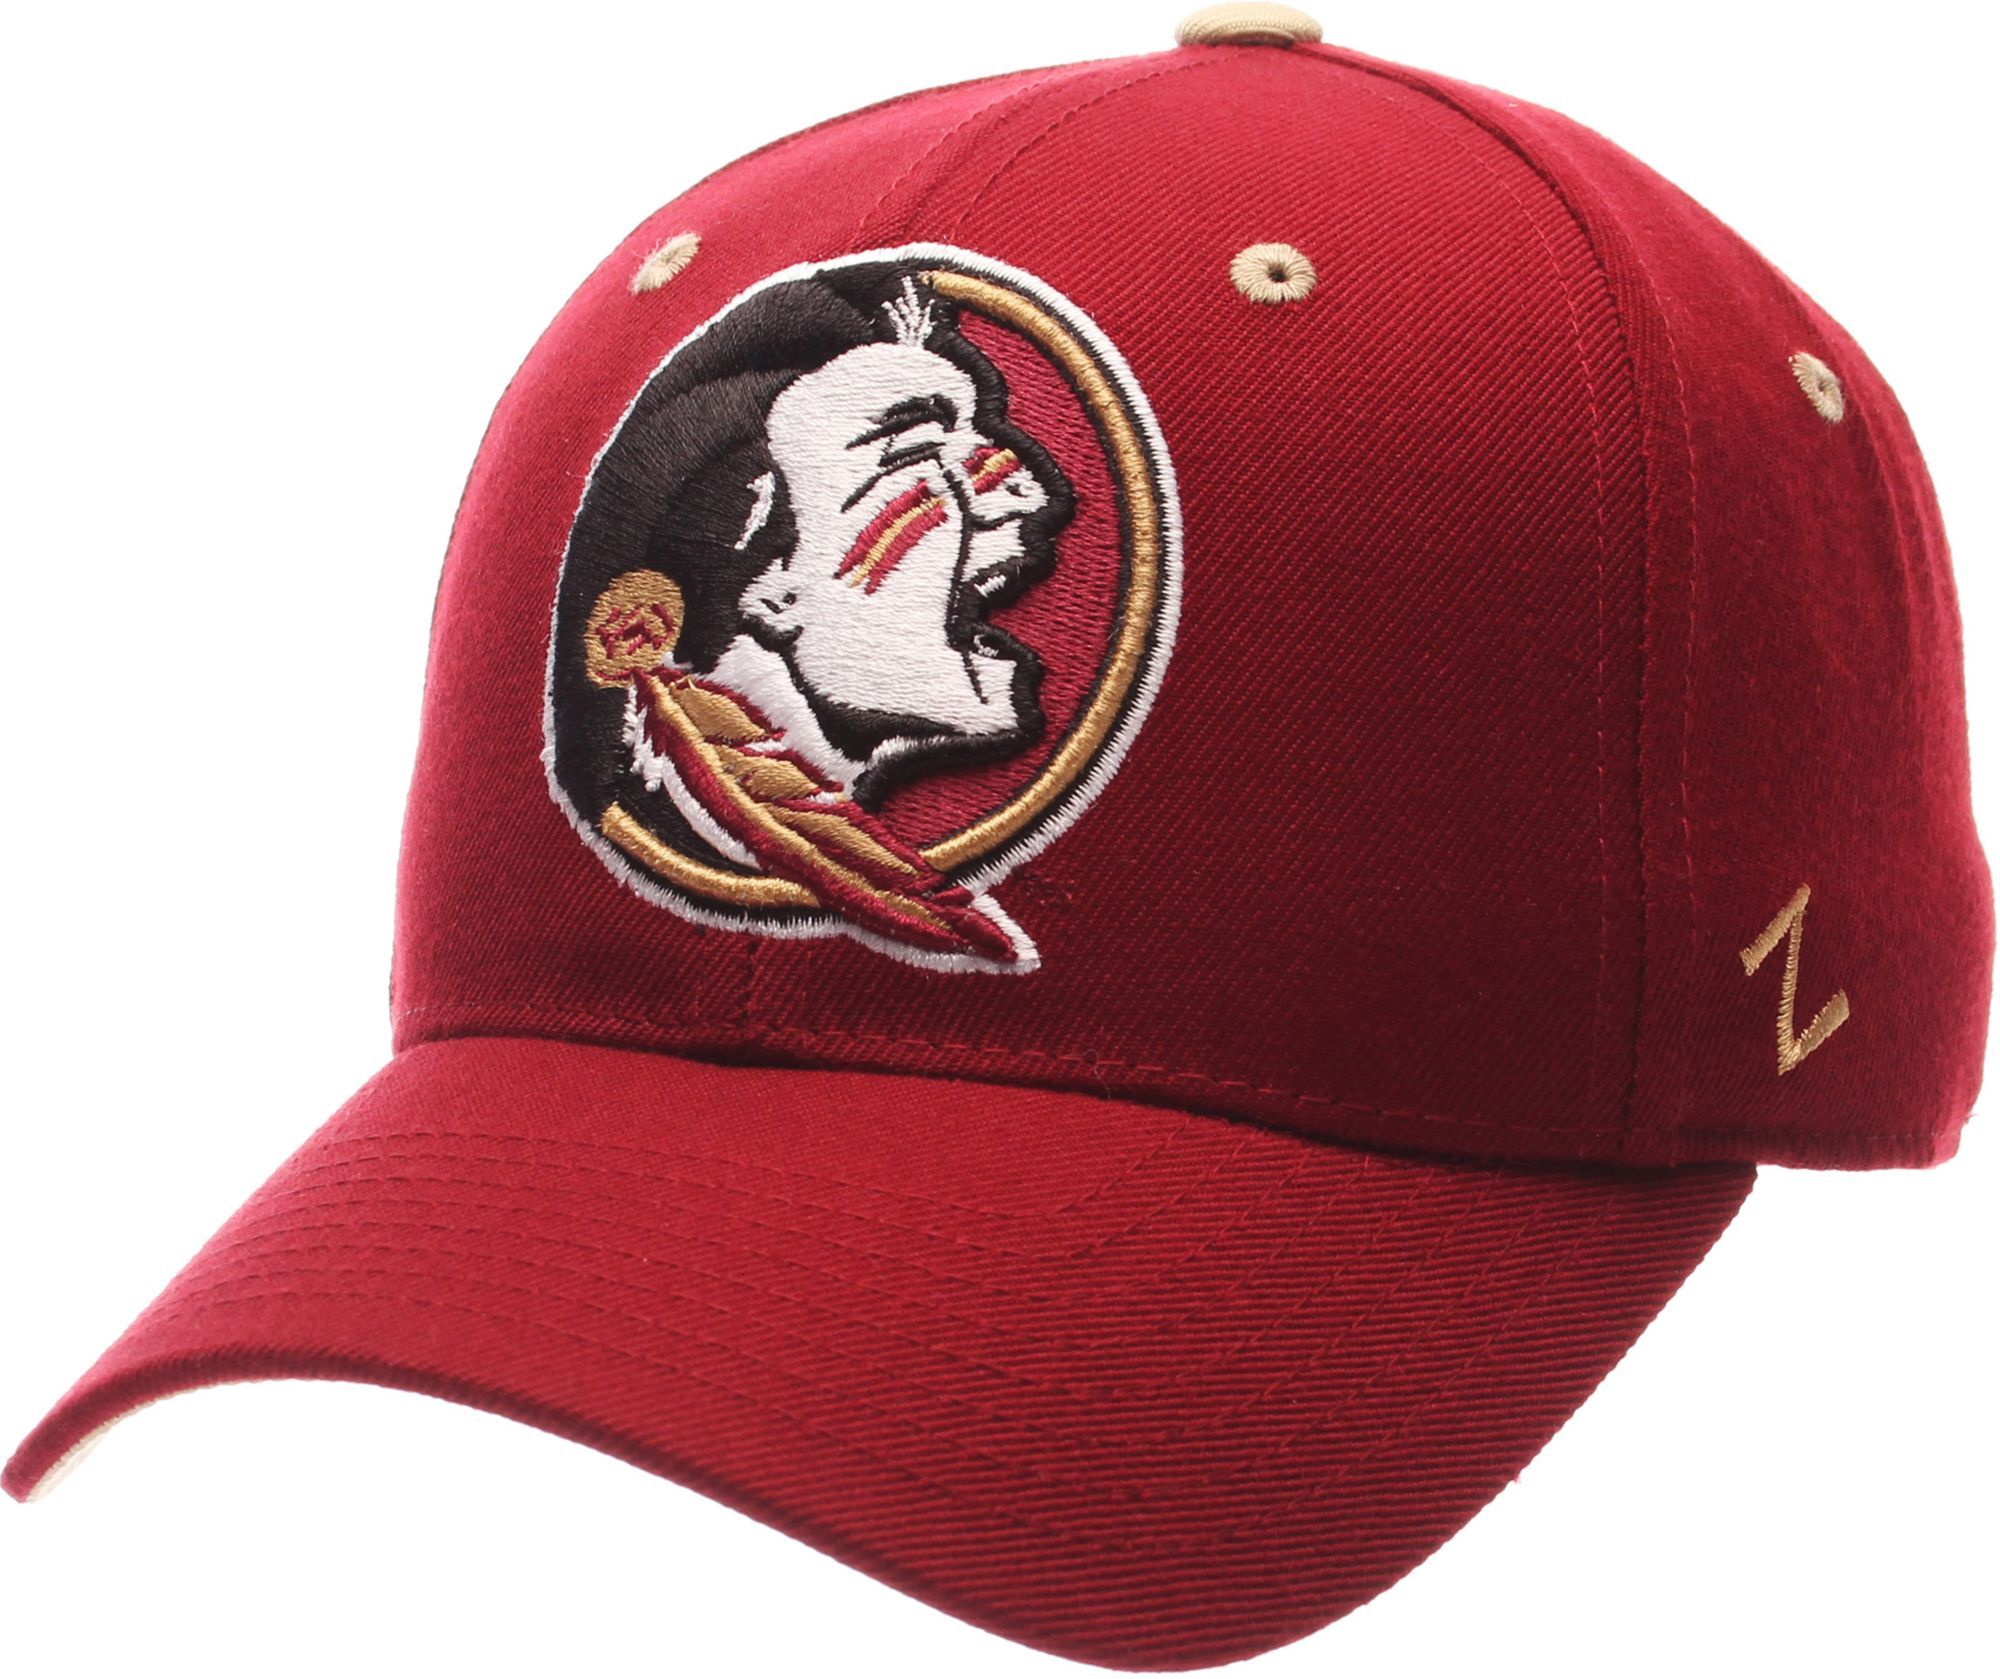 765d0dffc34715 Zephyr Men's Florida State Seminoles Garnet DH Fitted Hat, Size: 7 3/8,  Multi